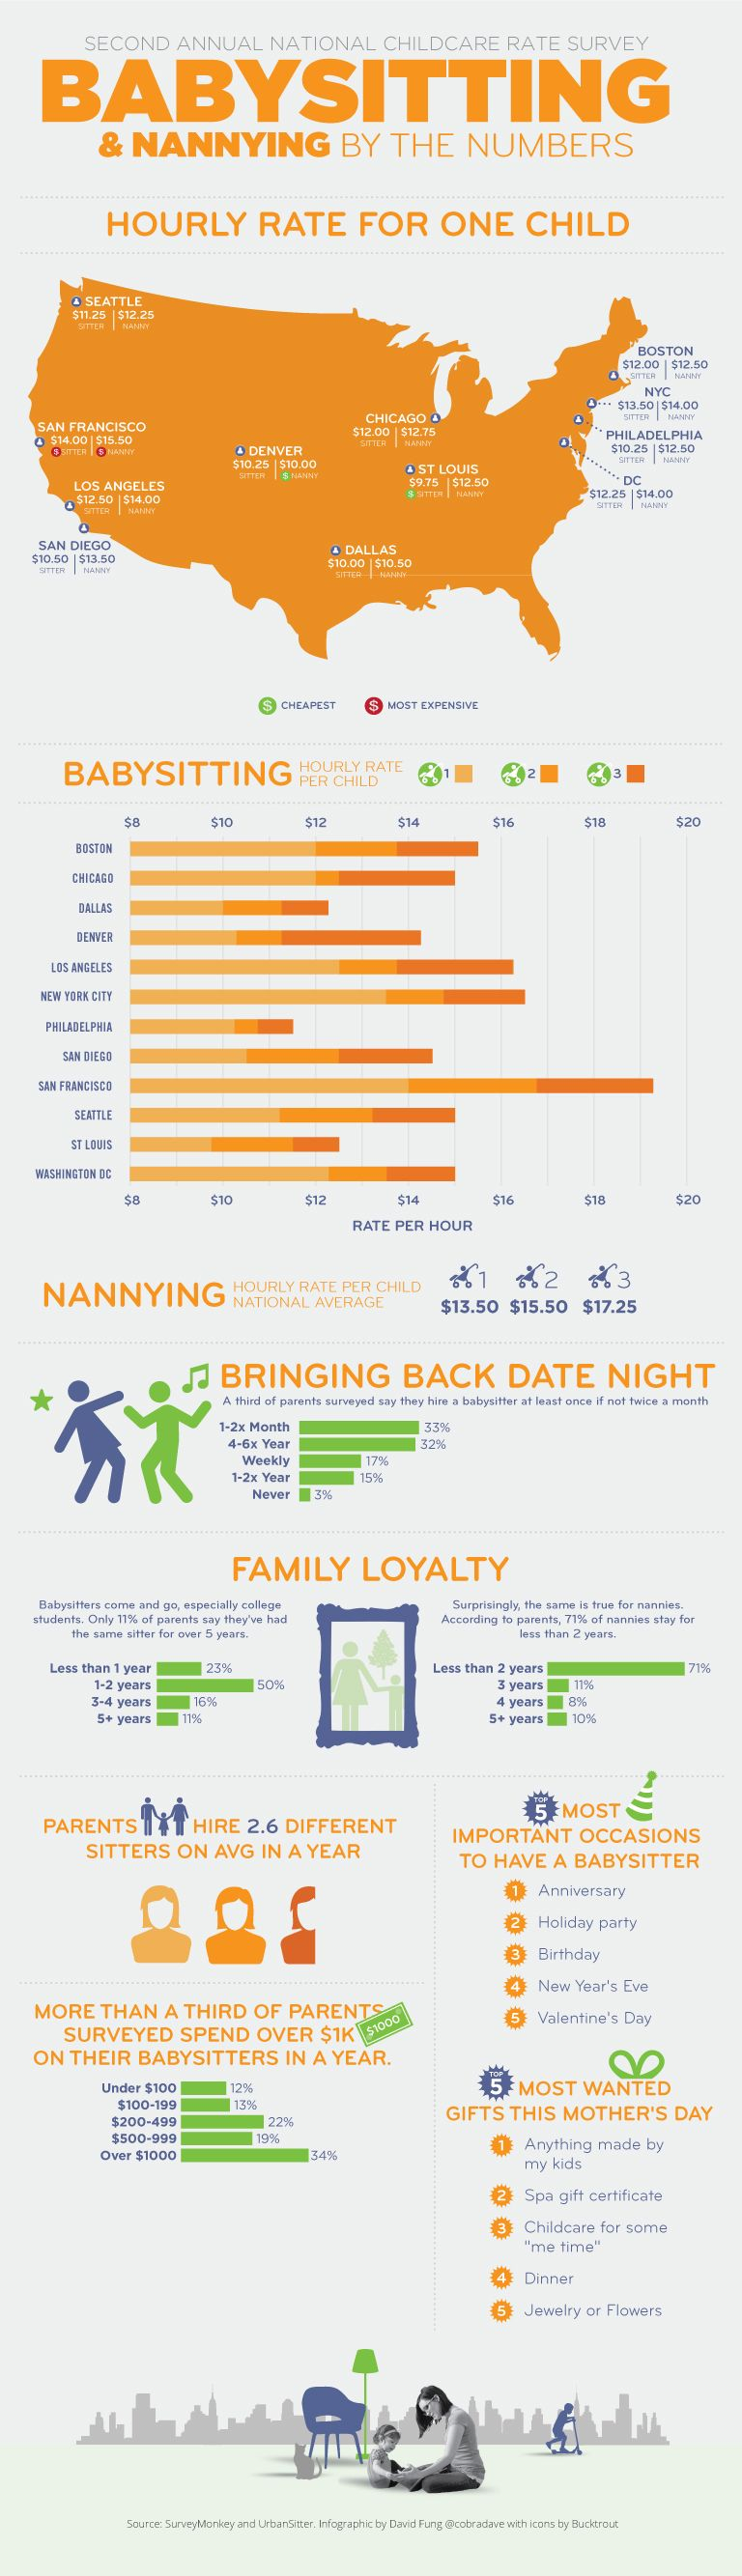 125 Great Babysitting Company Names Babysitter Rates